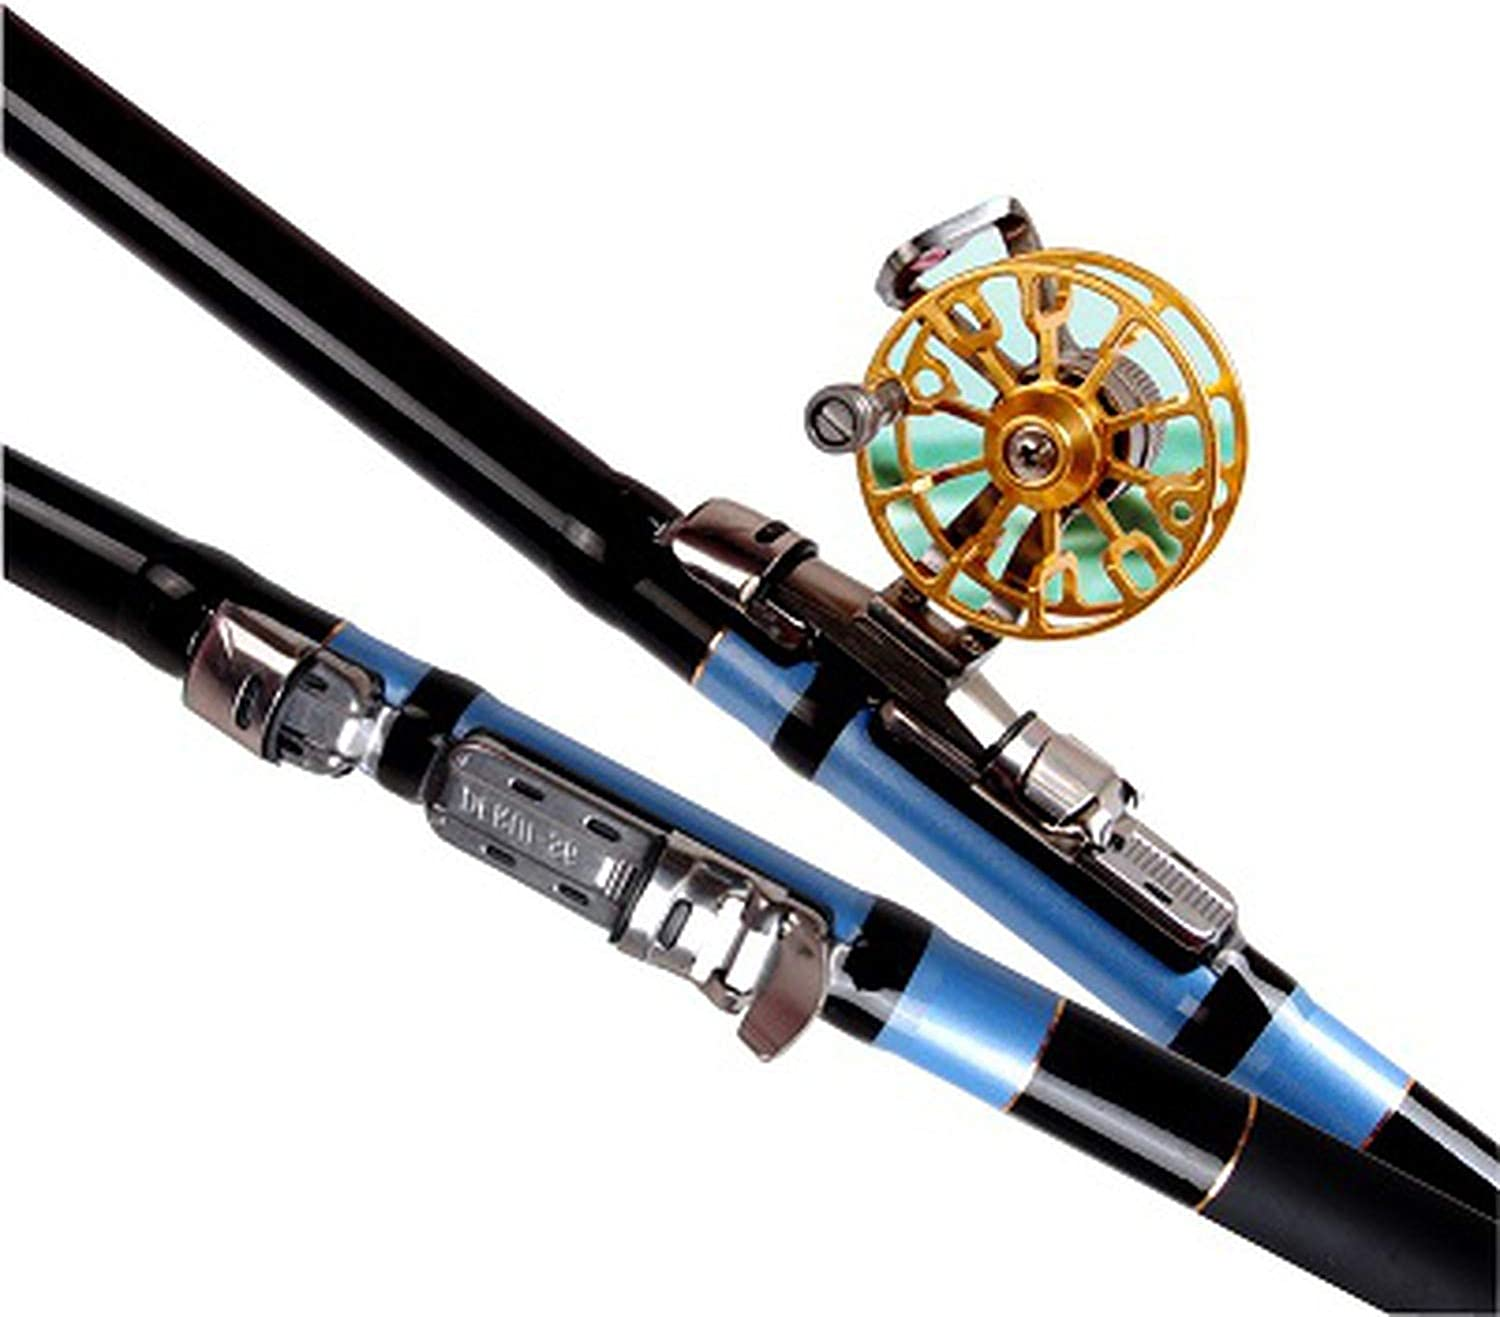 Carbon 4.5m 5.4m 6.3m 7.2m Telescopic Fishing Rod Ultra Light Front Fishing Rod Spinning 3 Position Pole Tackle Sea Rod